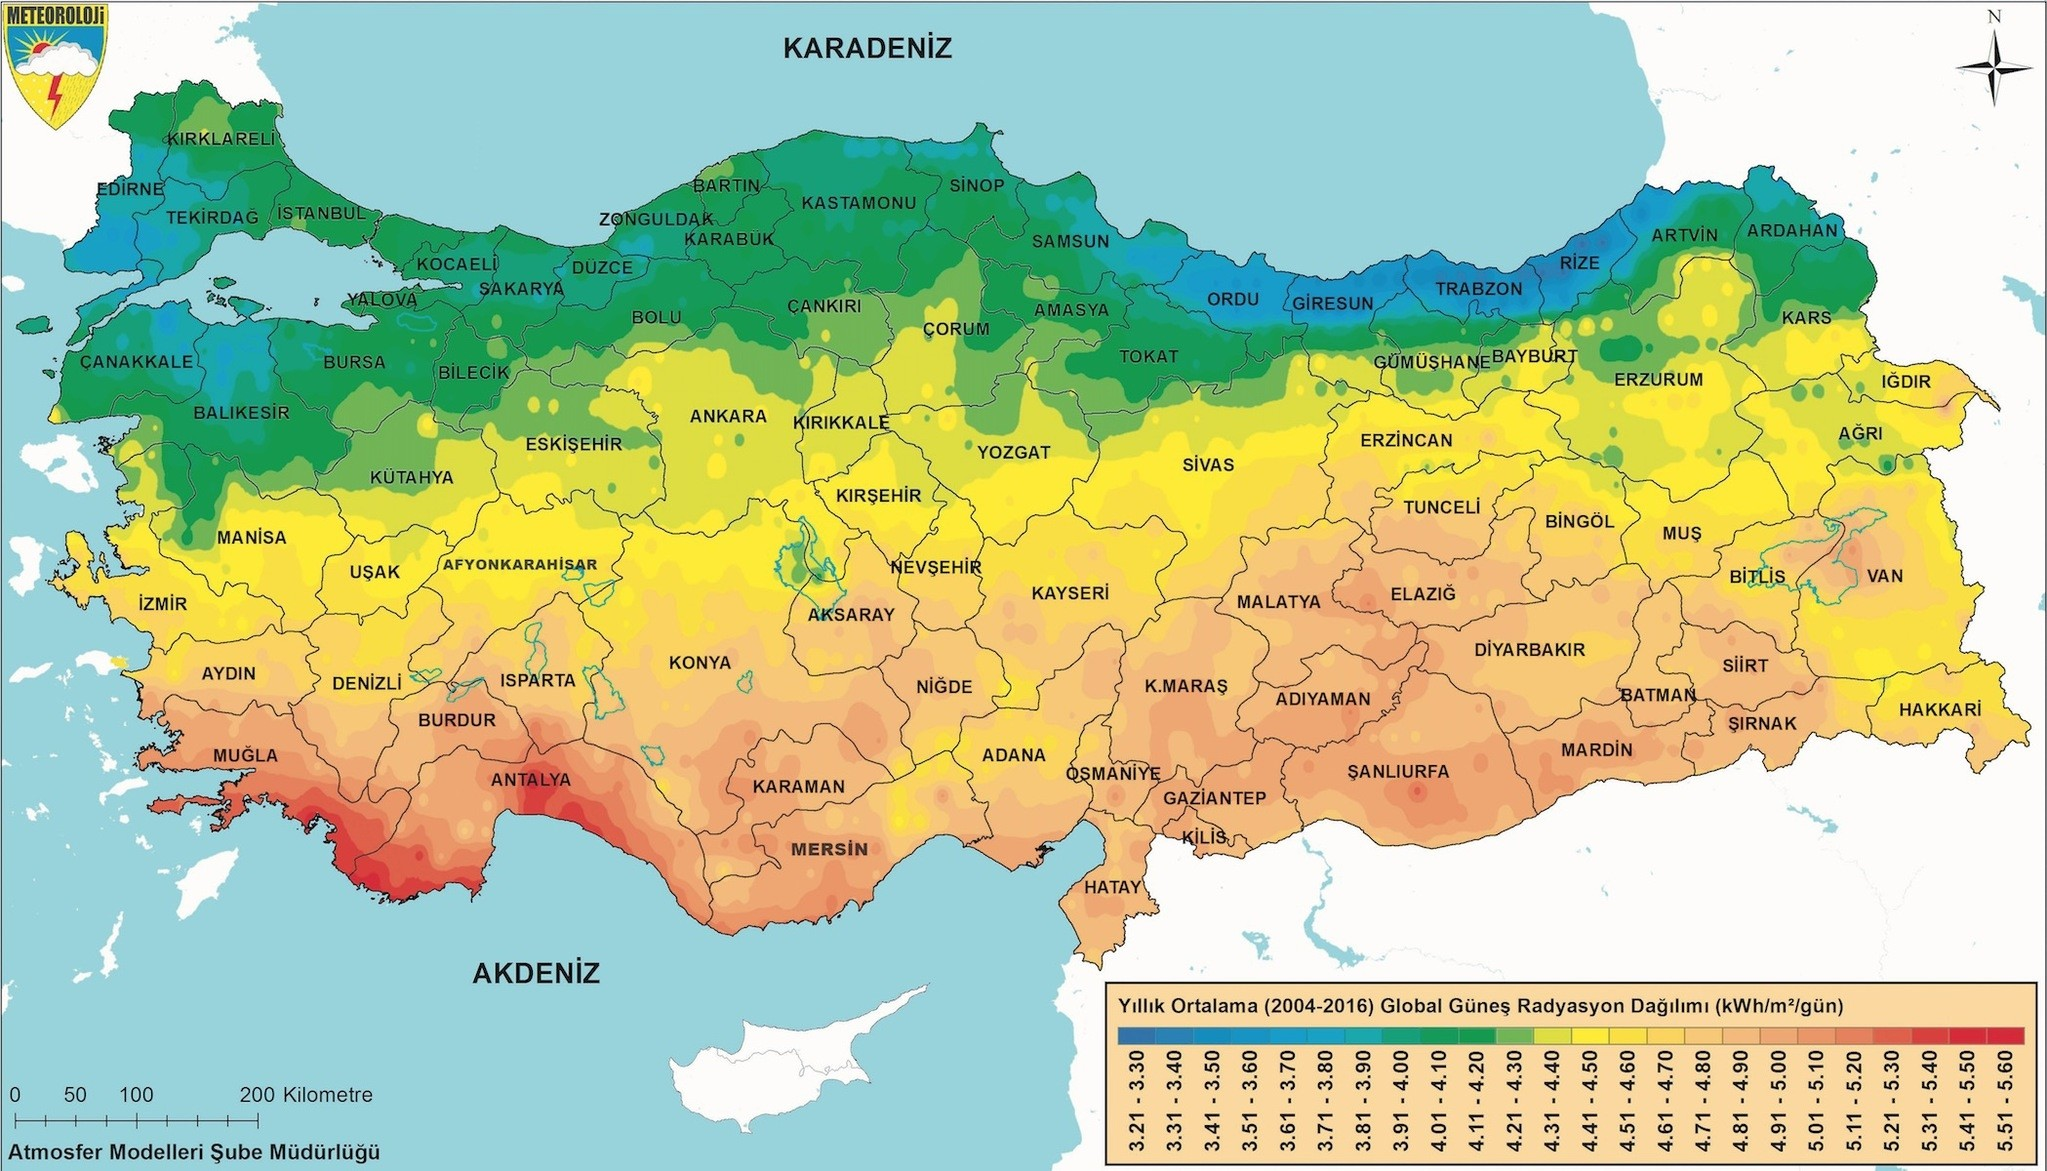 The colors on the map indicate the solar power potential across Turkey, with blue painted cities representing the lowest potential and orange-red the highest.